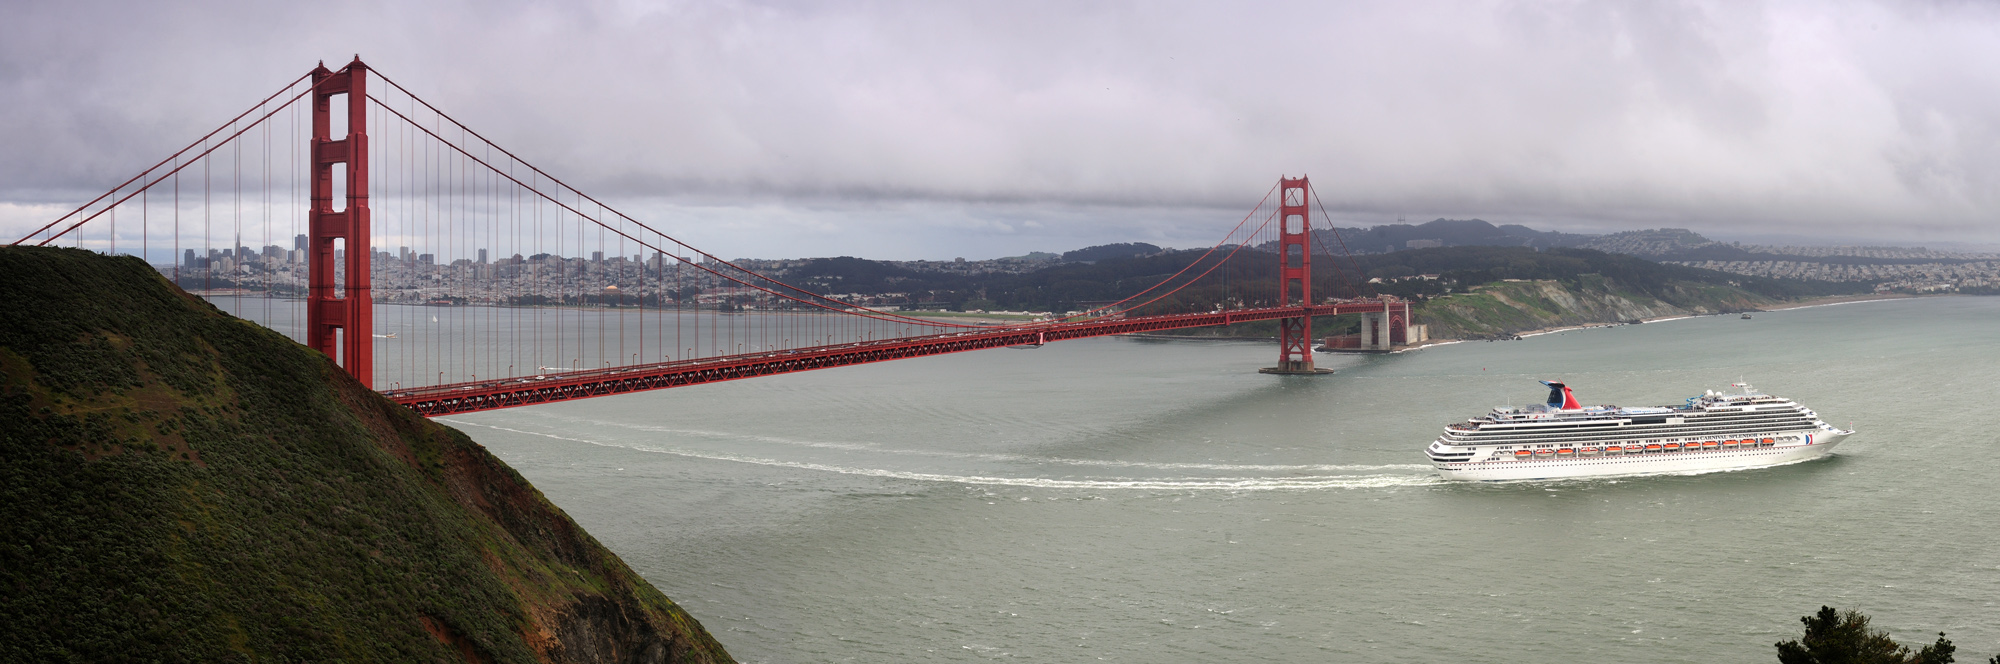 panorama_splendor_san_francisco_032109_2